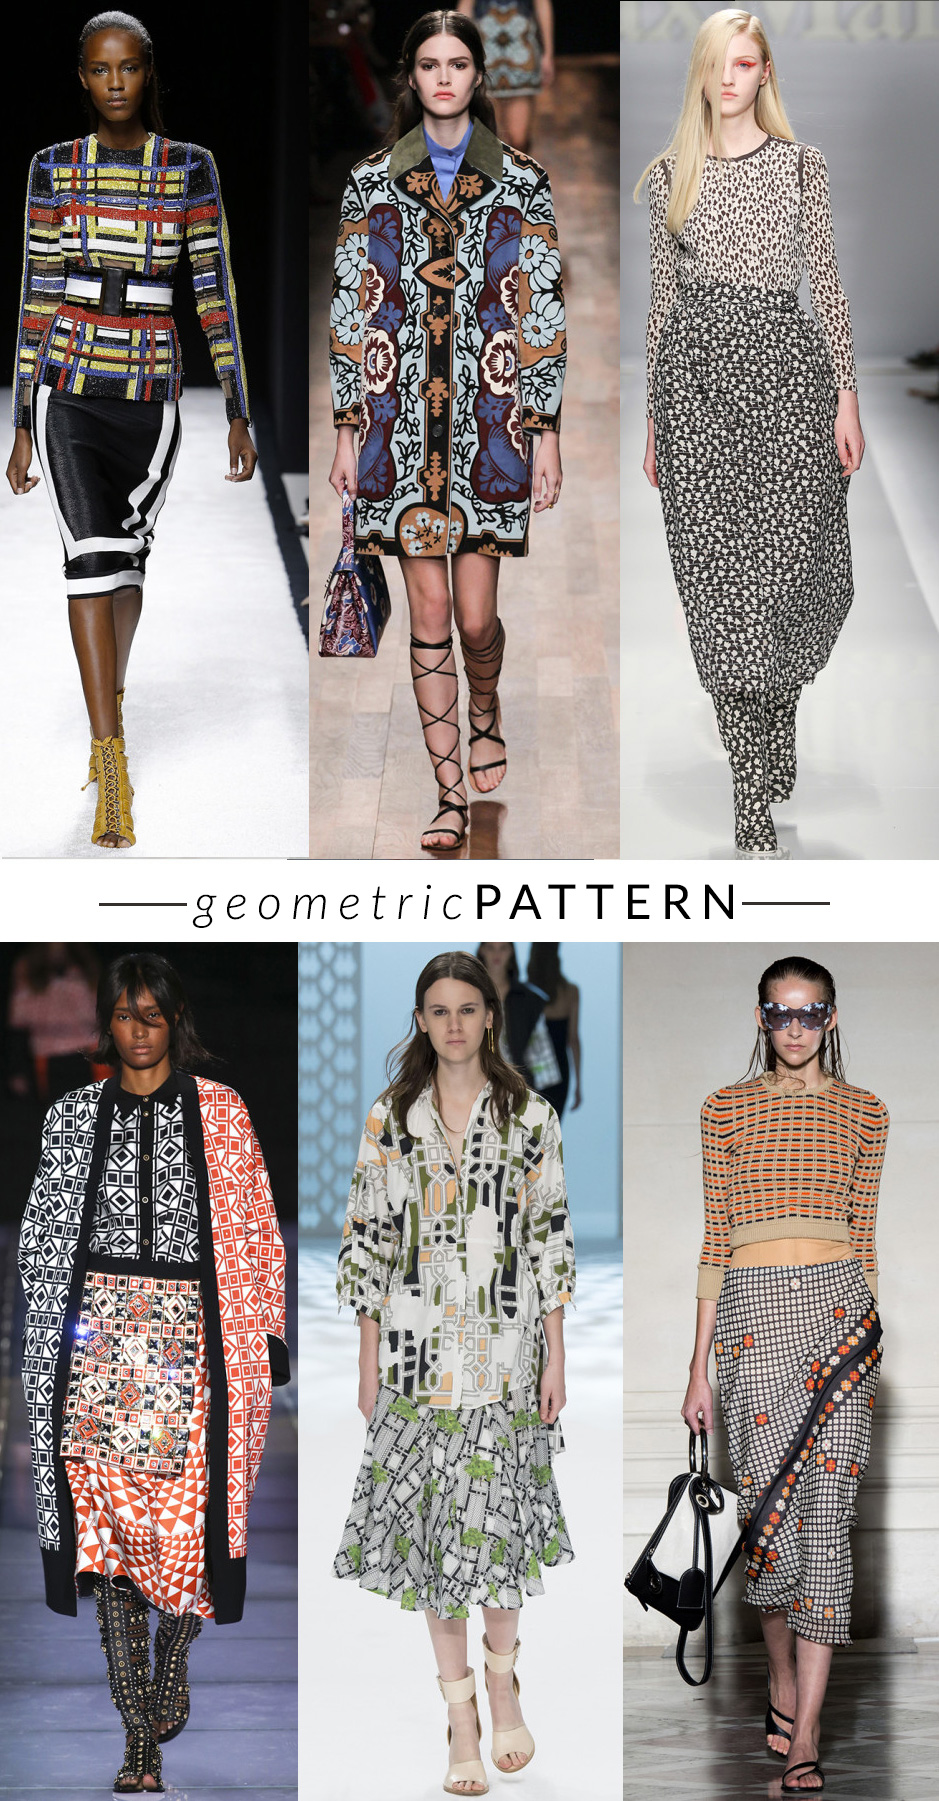 geomtric-pattern MULTICOLOR-STAMPE  trend moda primavera estate 2015 fashion blogger elena schiavon